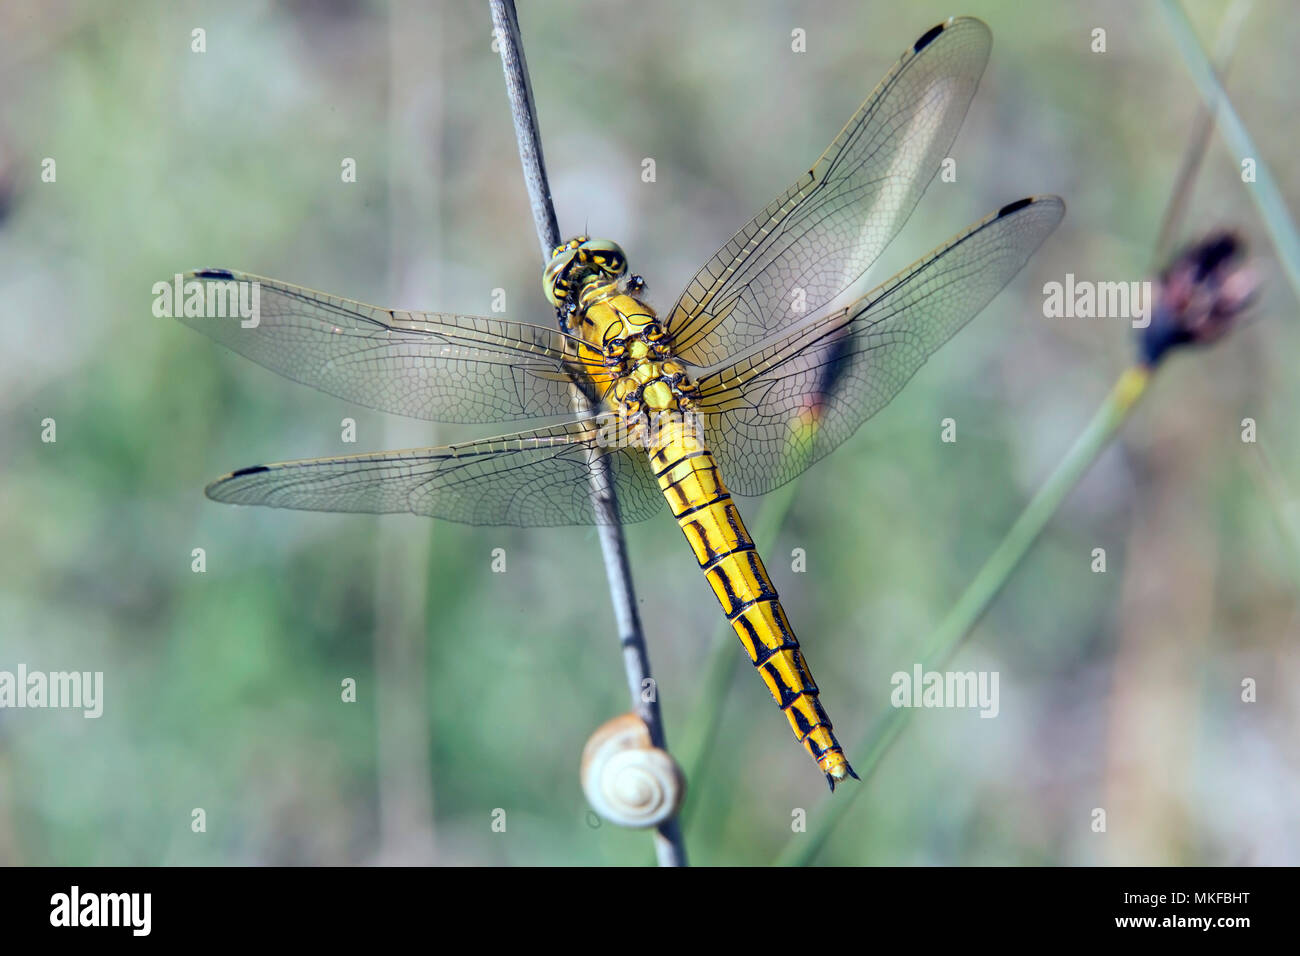 Black-tailed skimmer (Orthetrum cancellatum) female resting on a dry rush rod in spring, forest pond, massif de la Reine, Lorraine, France Stock Photo